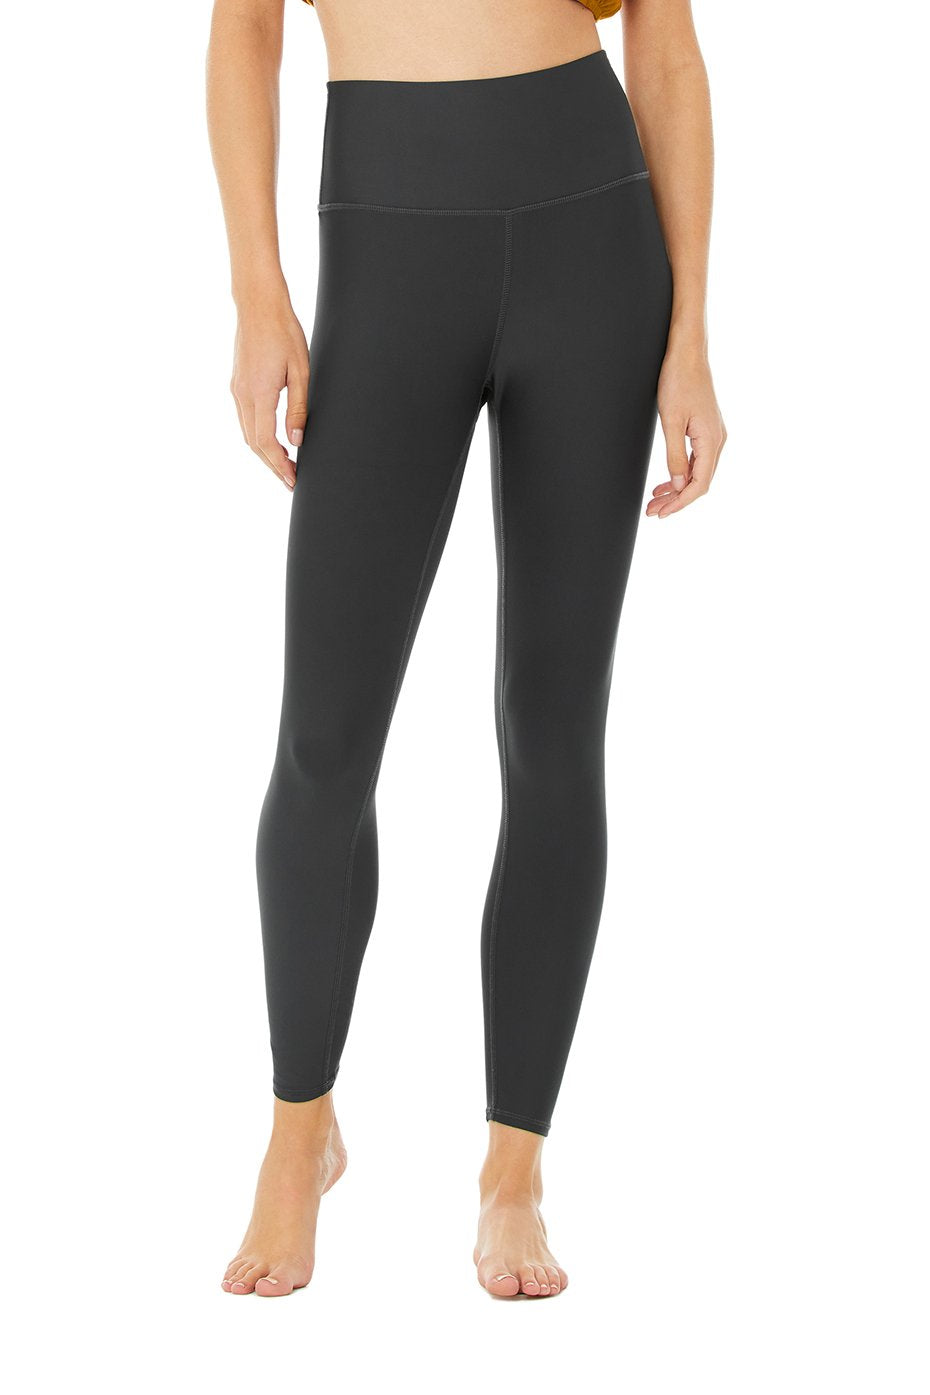 Alo Yoga SMALL High-Waist Airlift Legging - Anthracite